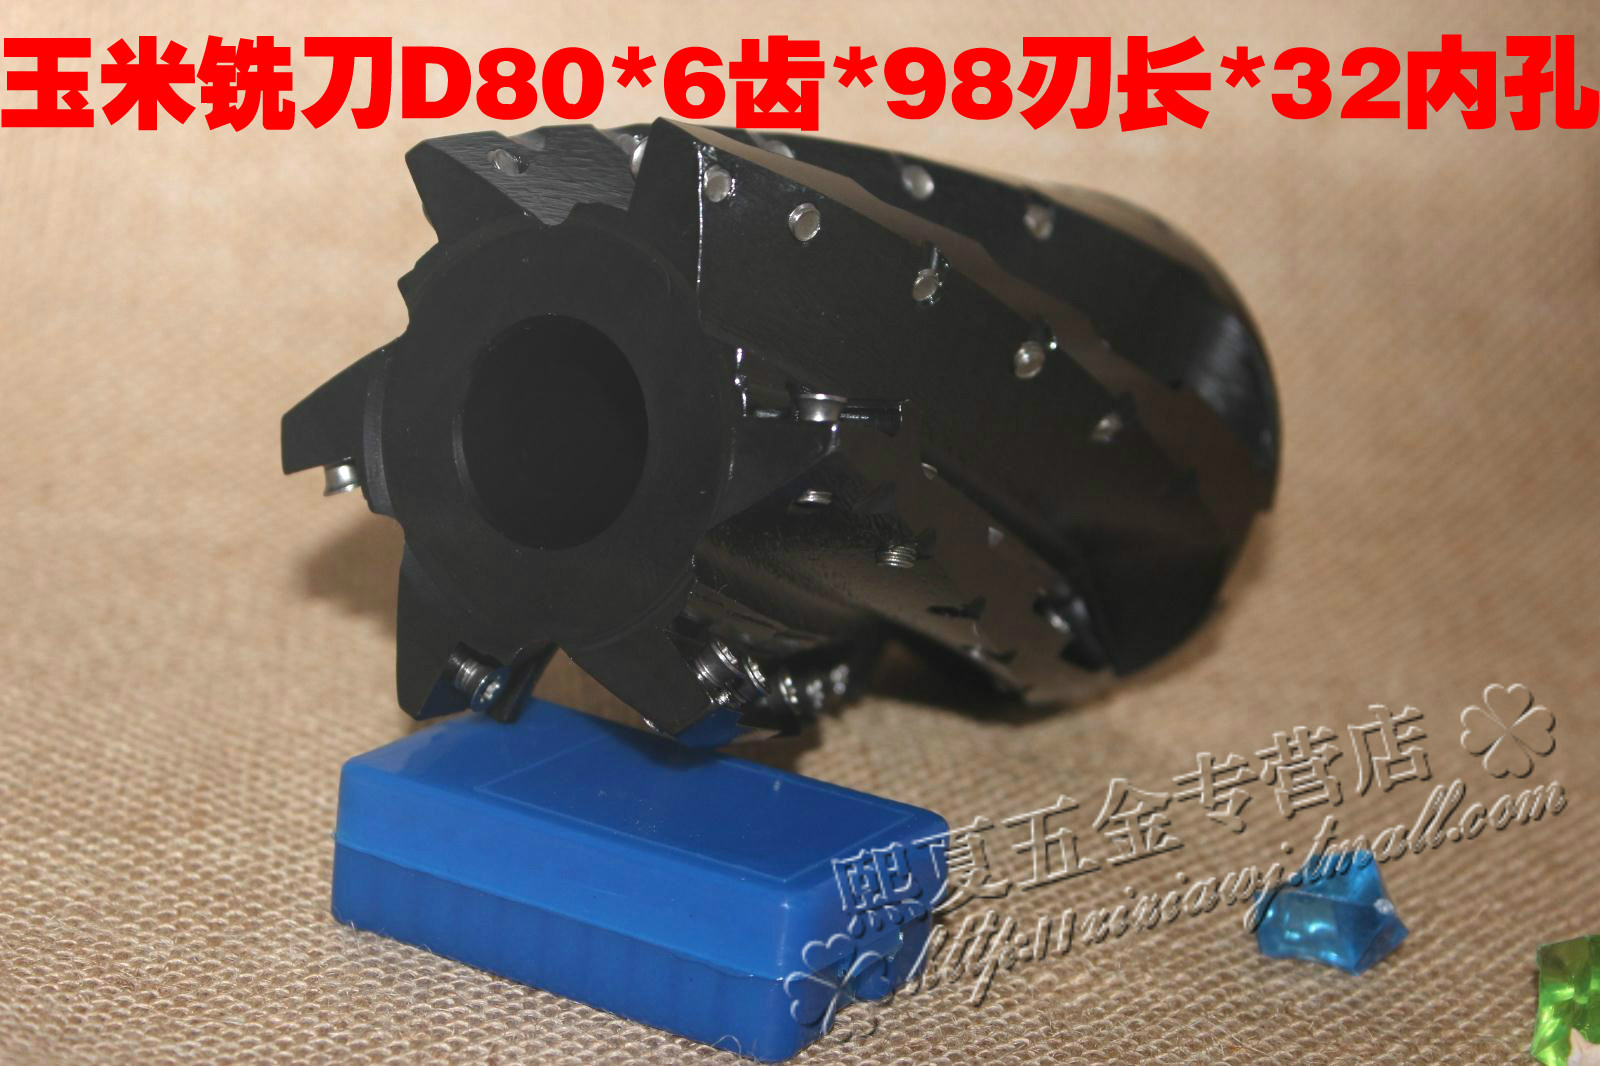 Sleeve type indexable helical sp series of large margin roughing corn corn milling cutter can be customized non Marked